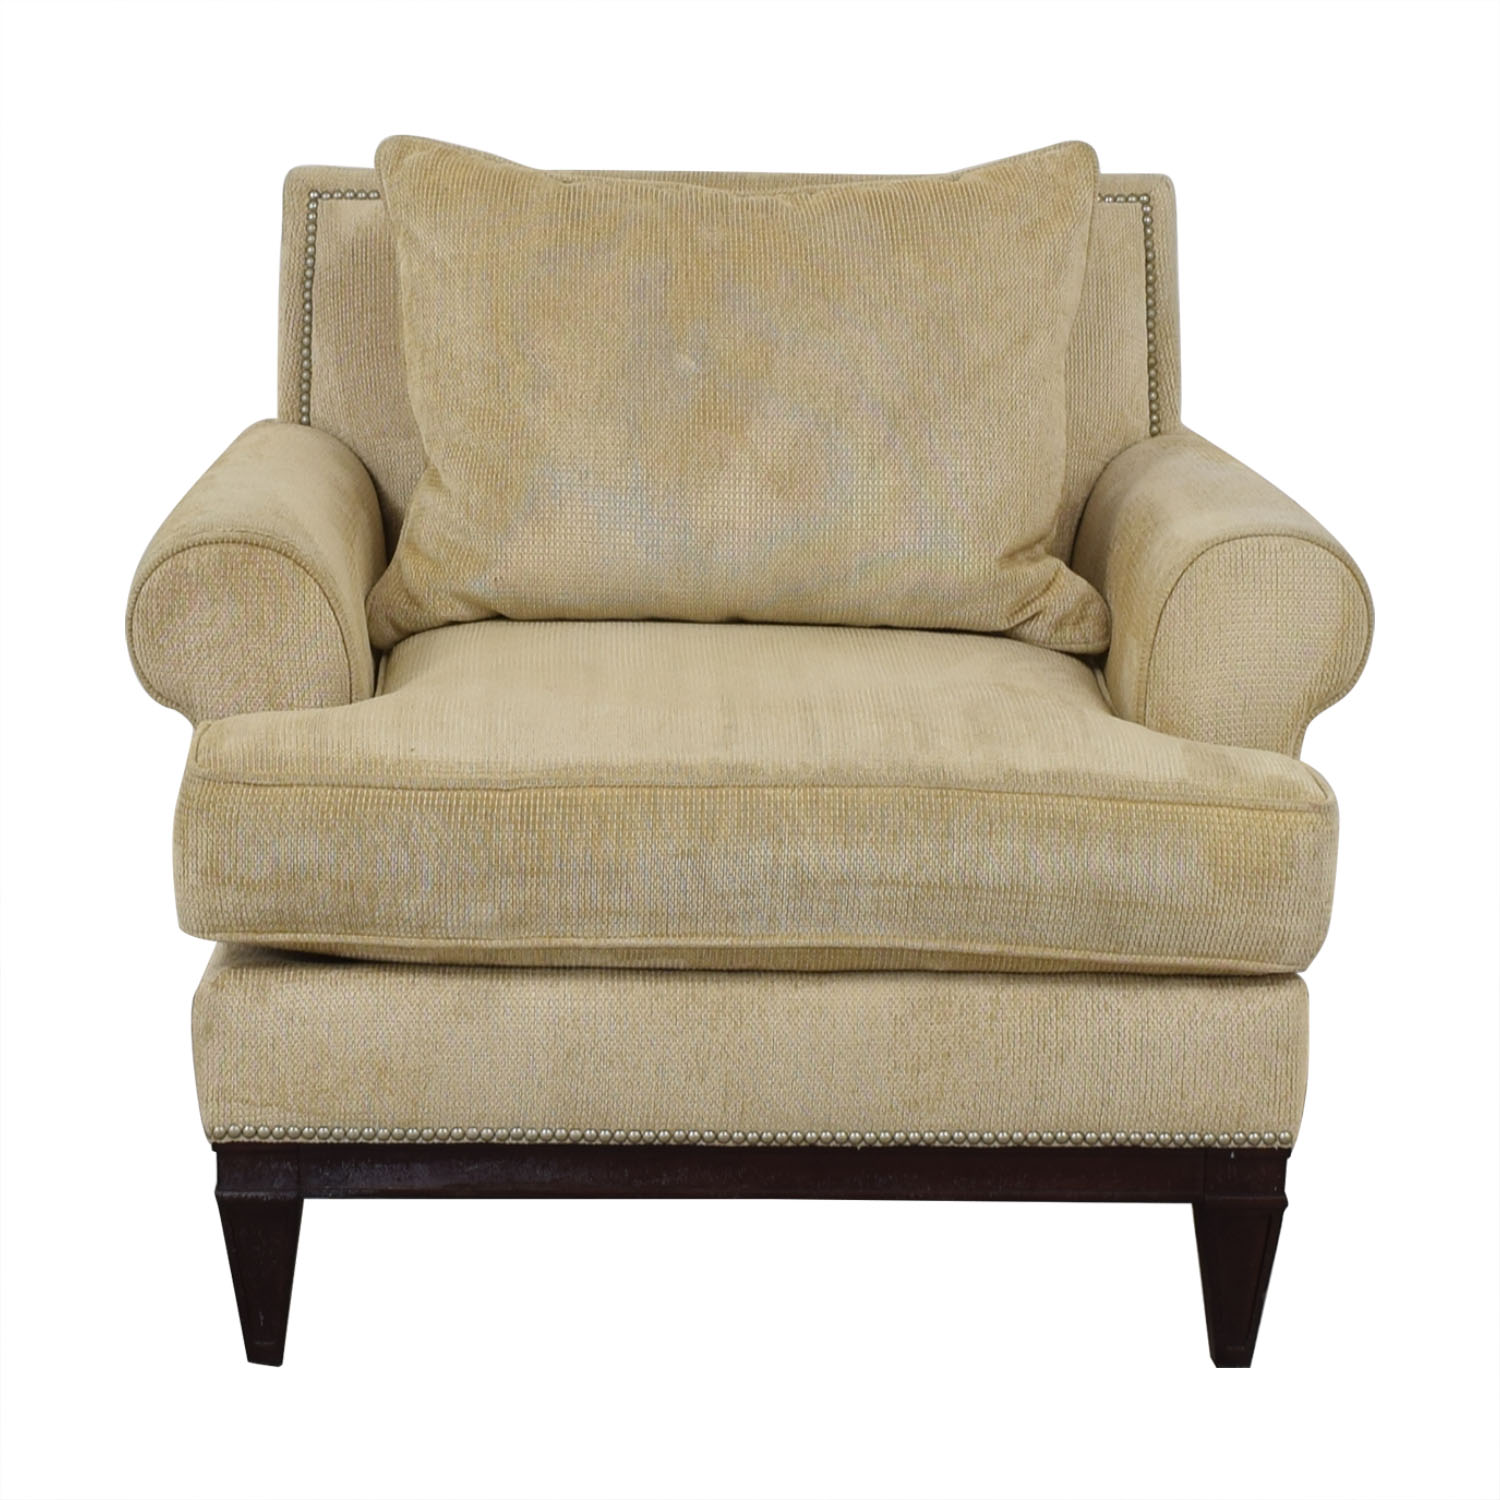 76 Off Bernhardt Bernhardt Roll Arm Accent Chair Chairs